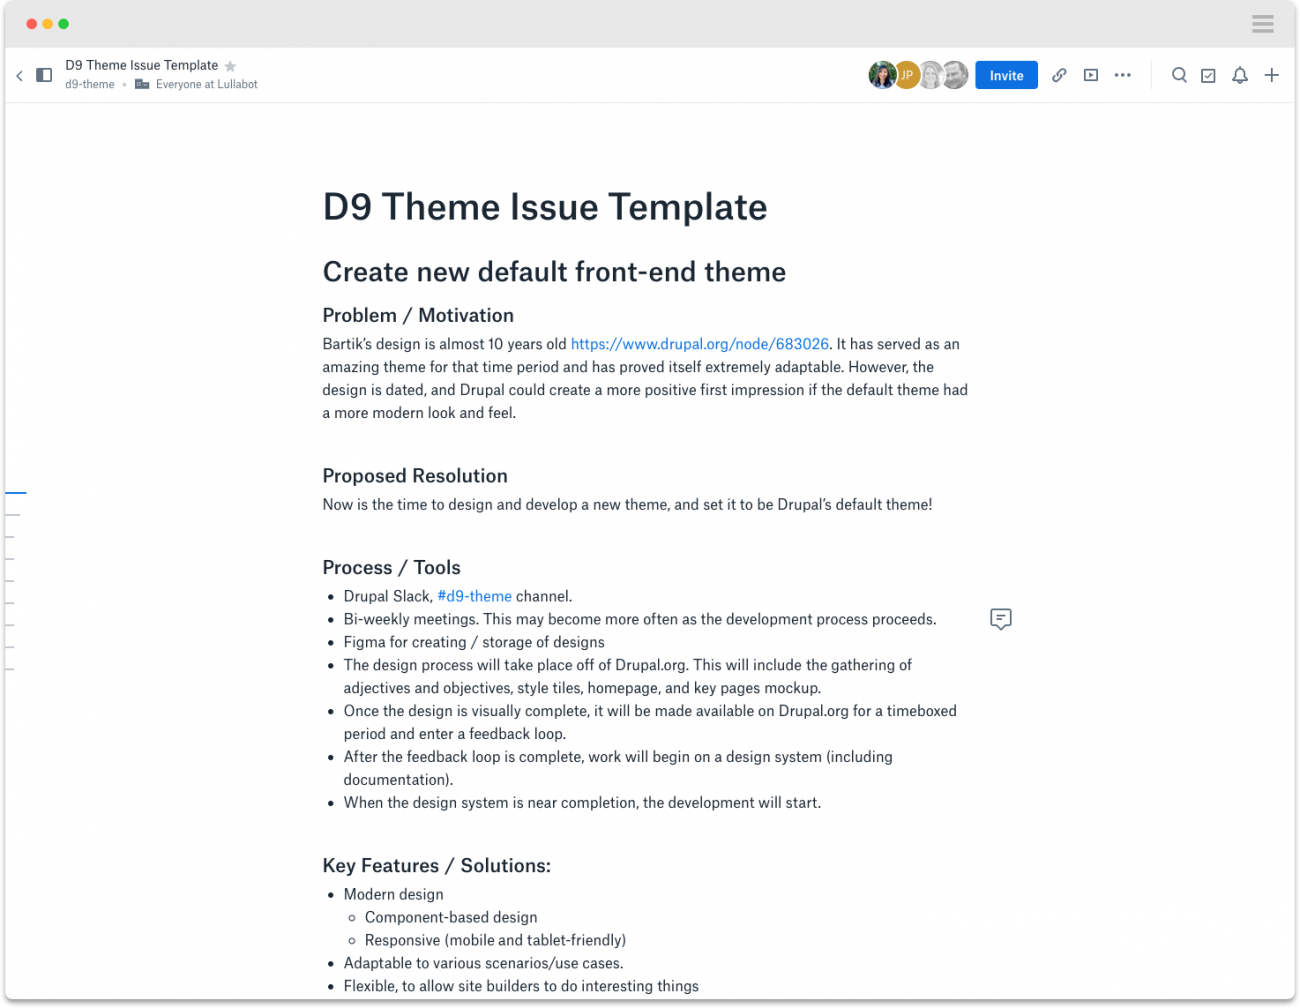 D9 Issue Template